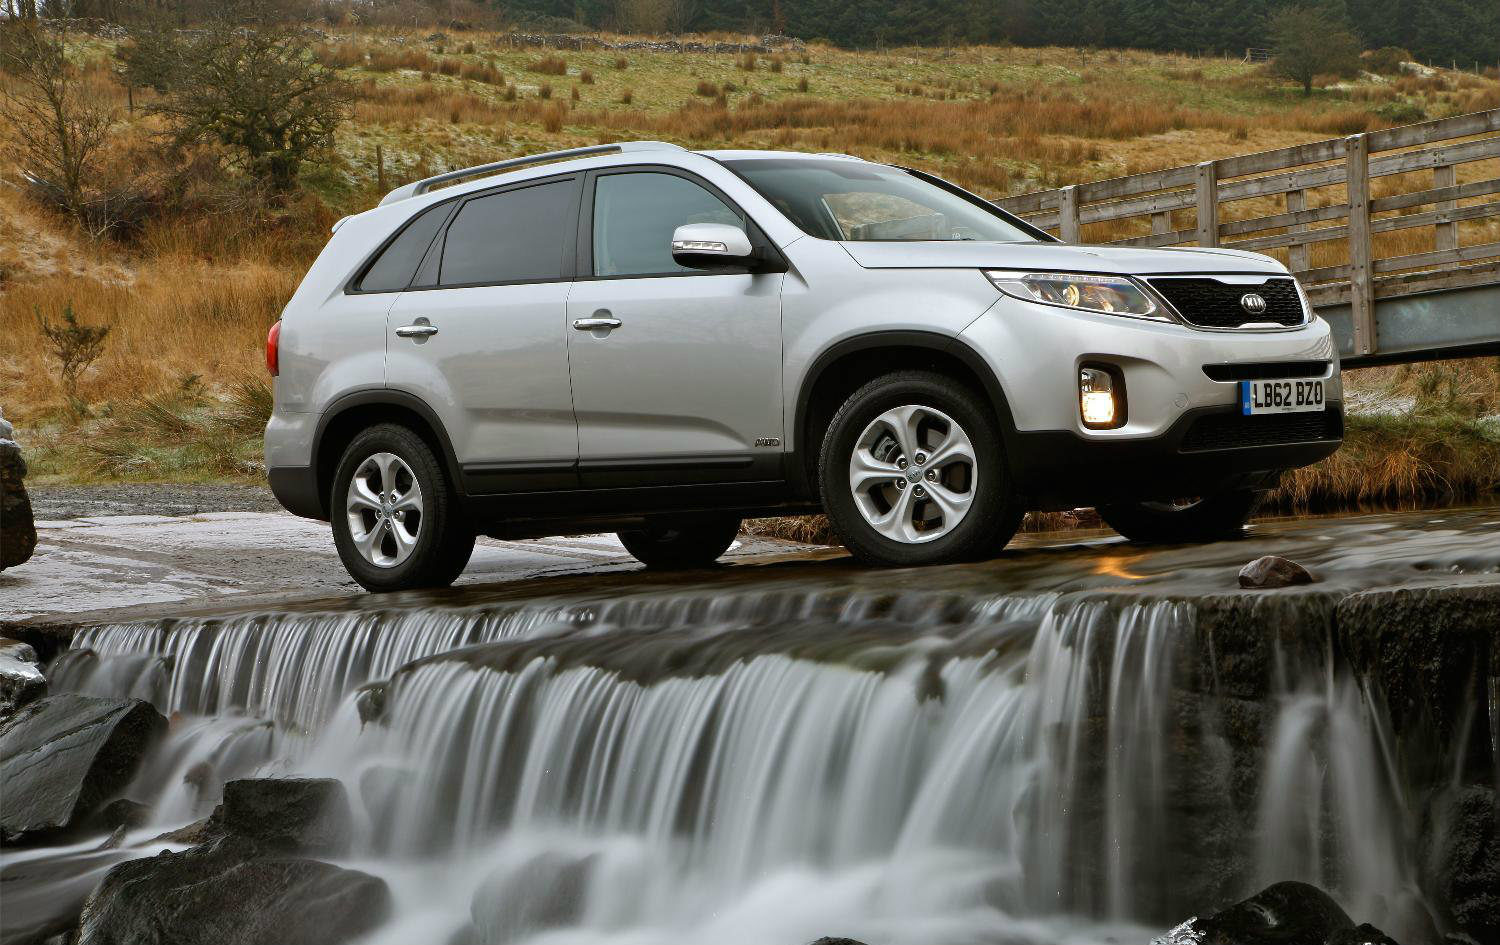 image of a kia sorento in the countryside